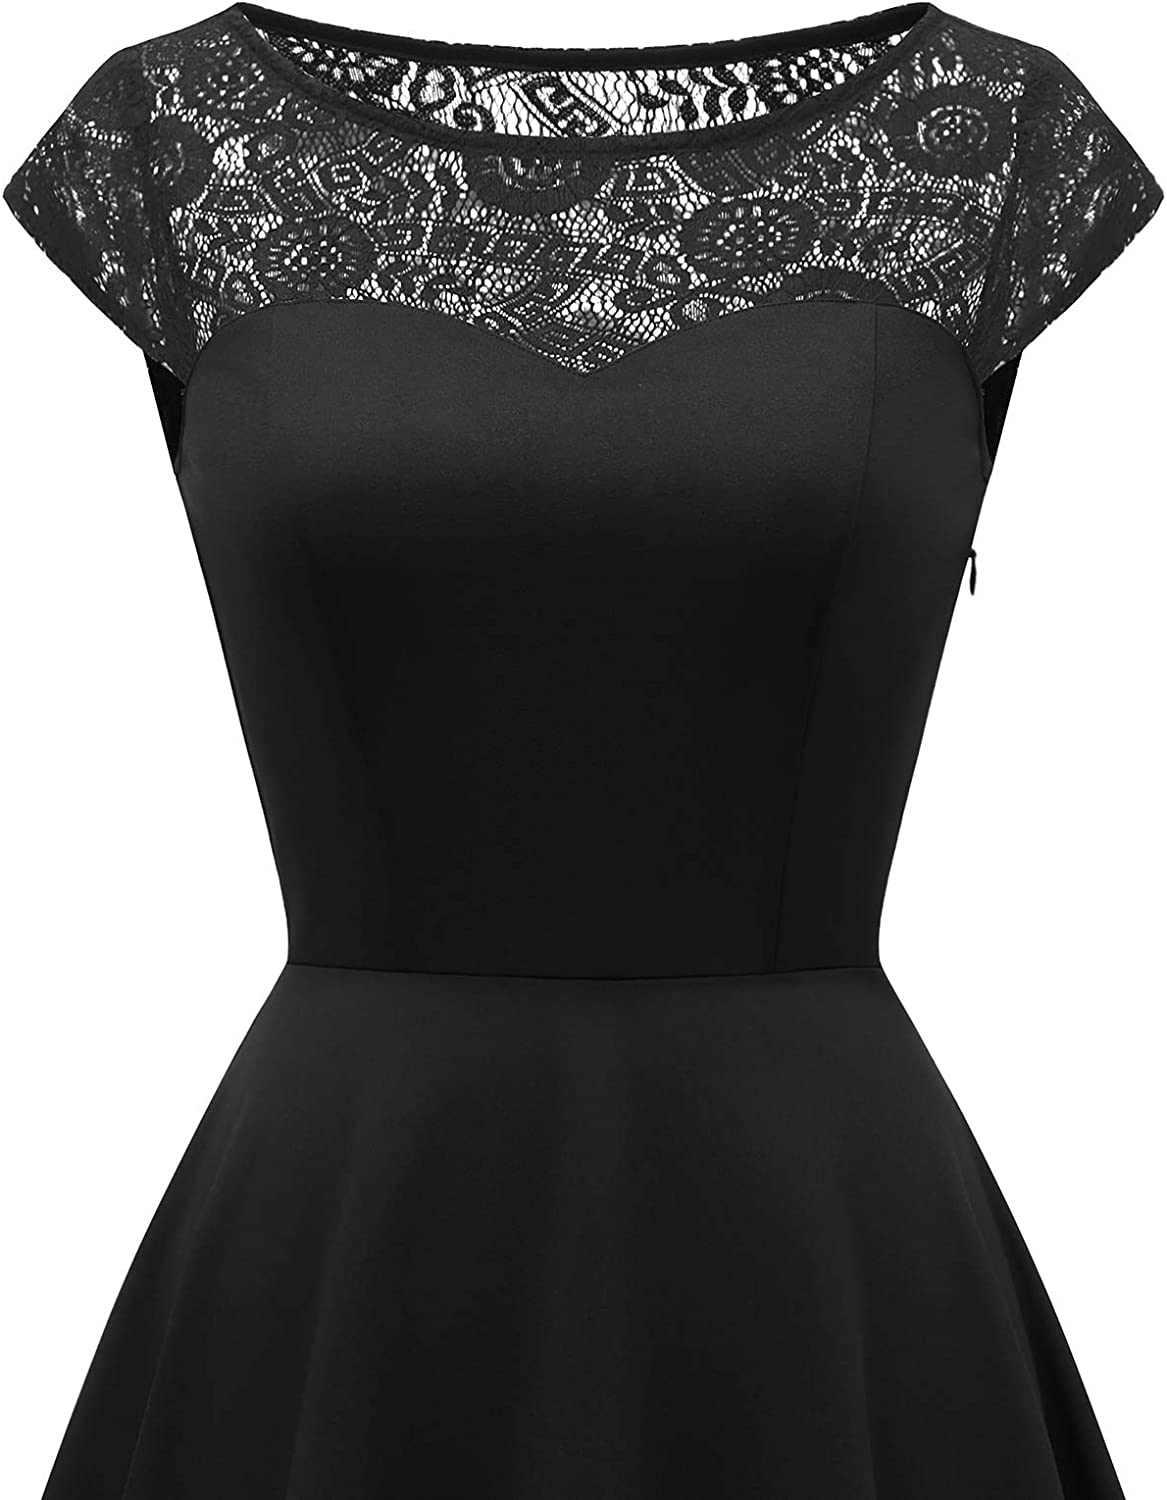 HomRain Womens 1950s Vintage Lace Collar Cap Sleeve /& 3//4 Sleeve Cocktail Evening Swing Party Dress